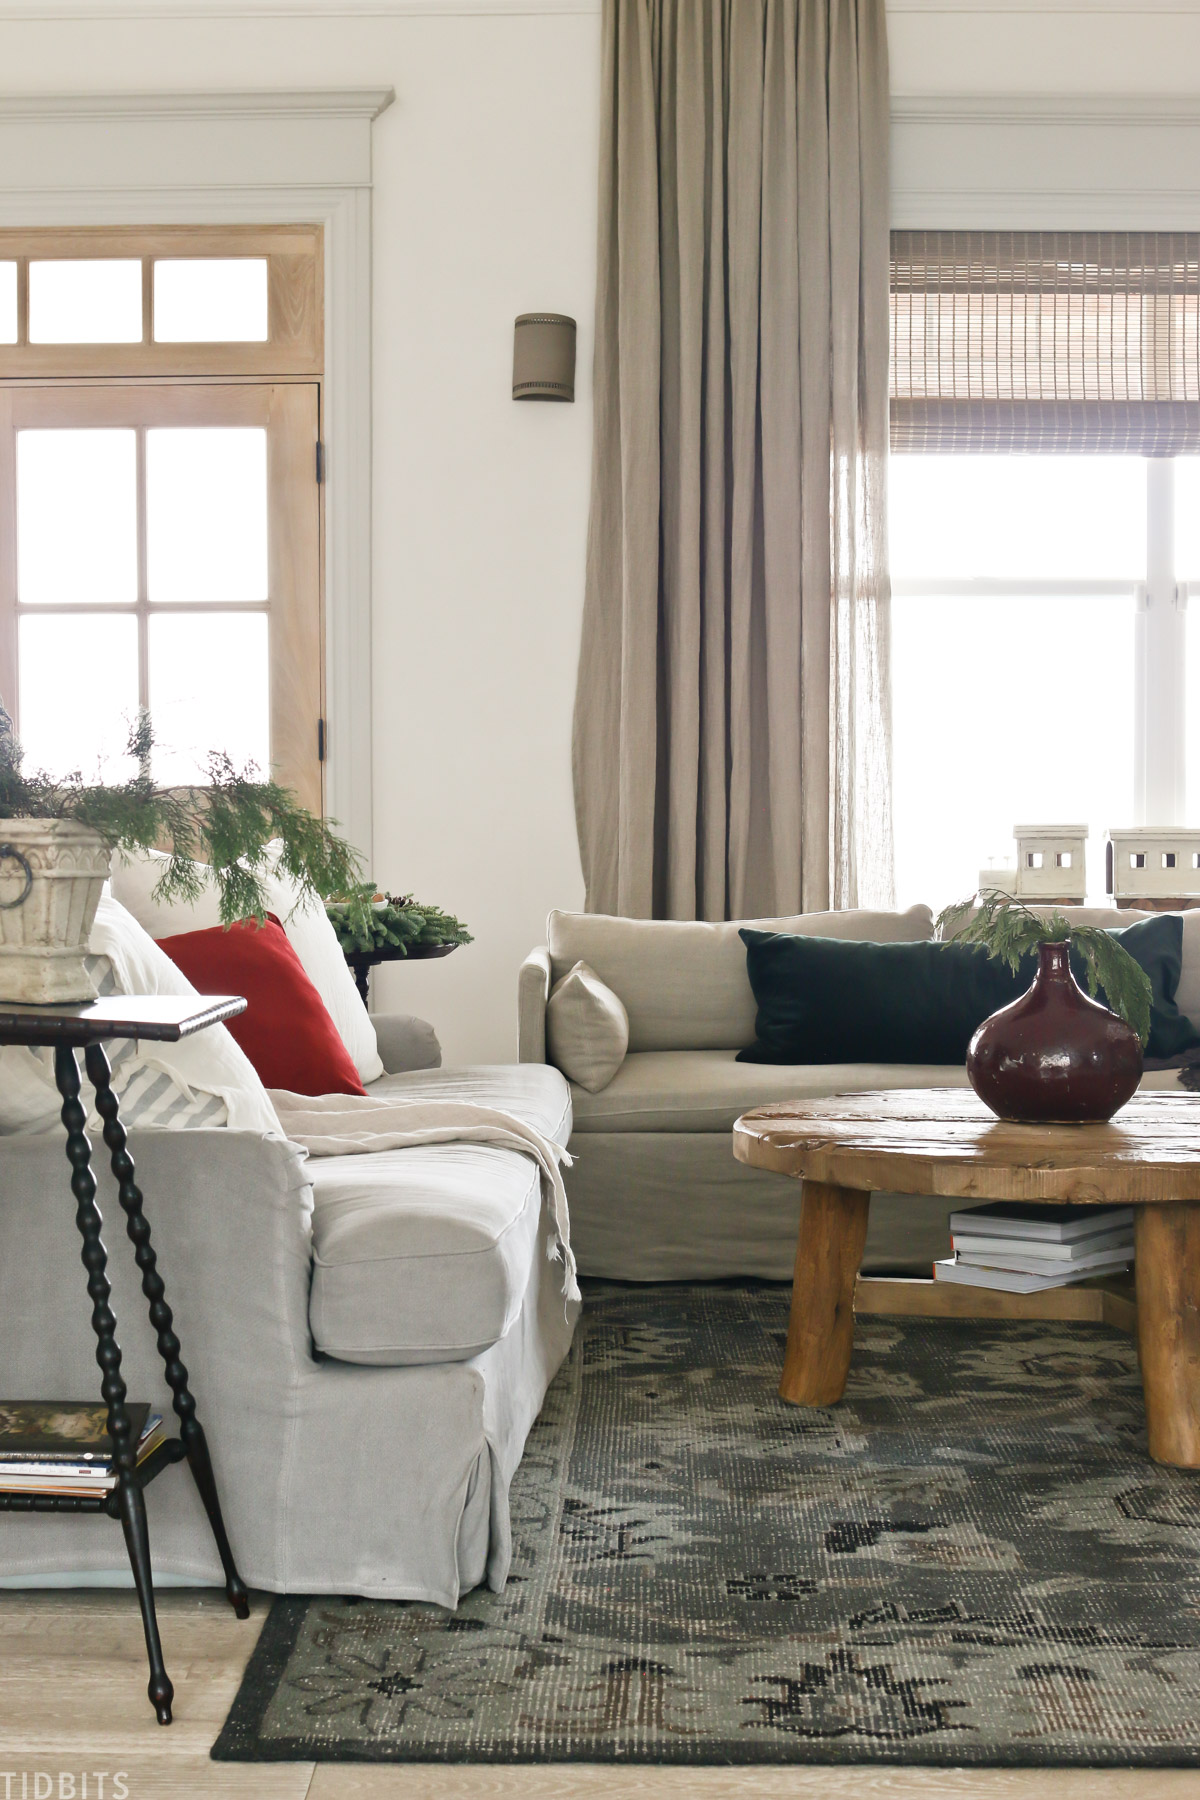 living room with European Old World Christmas decorations with arm chair, coffee table, and couch